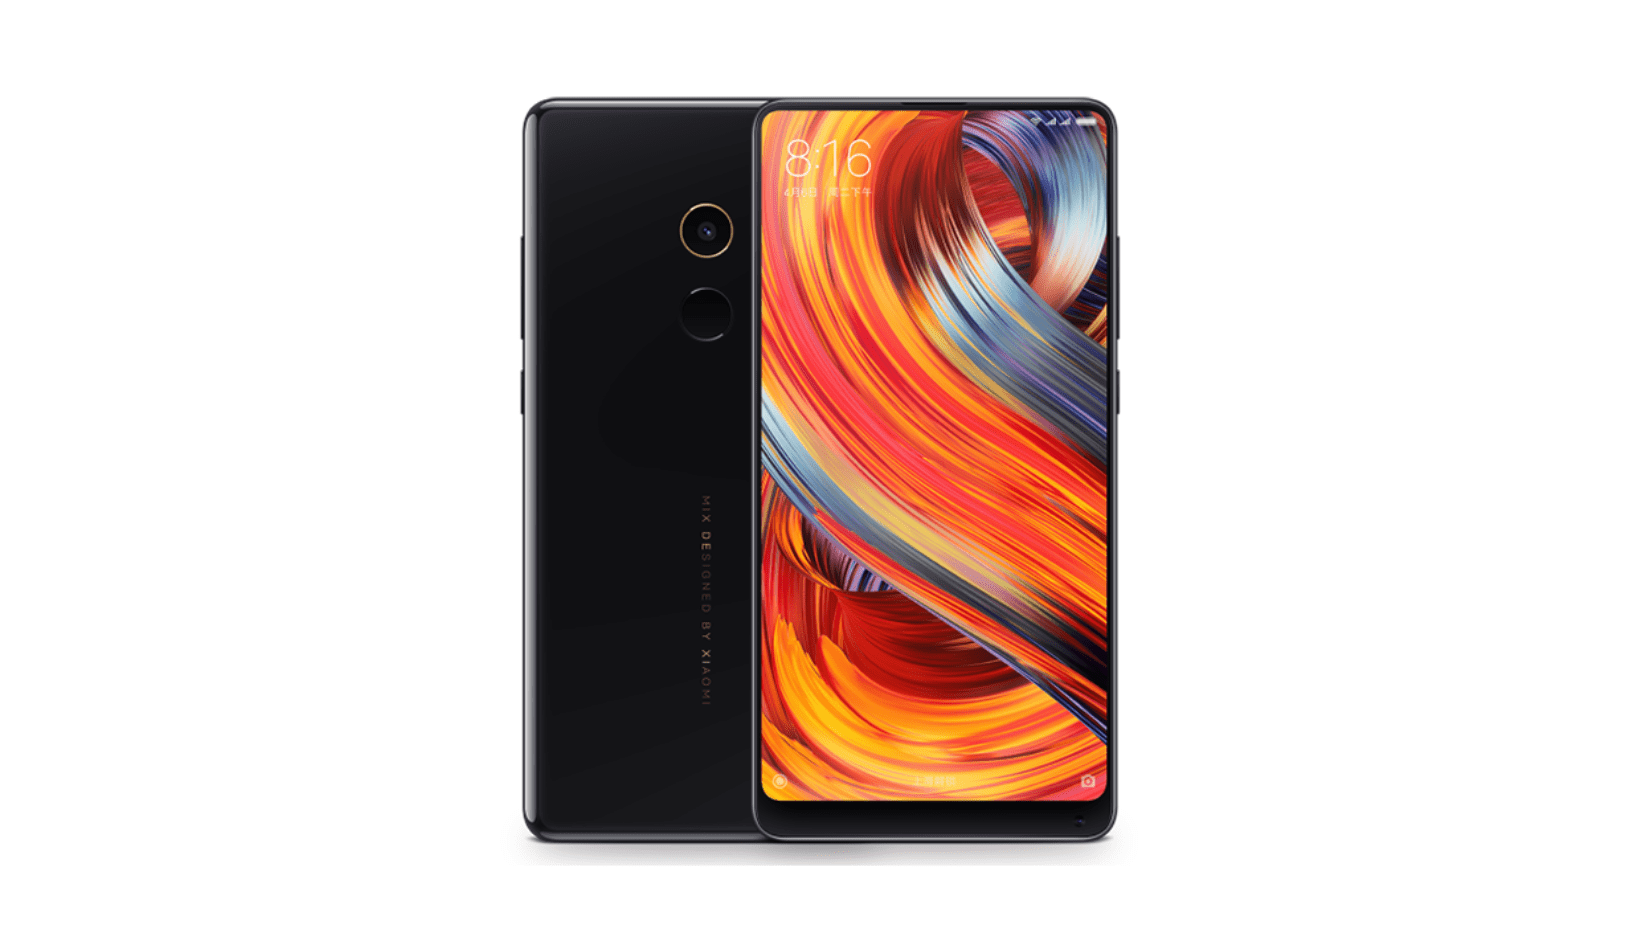 🔥 Bon plan : le Xiaomi Mi Mix 2 disponible à 255 euros sur Rakuten